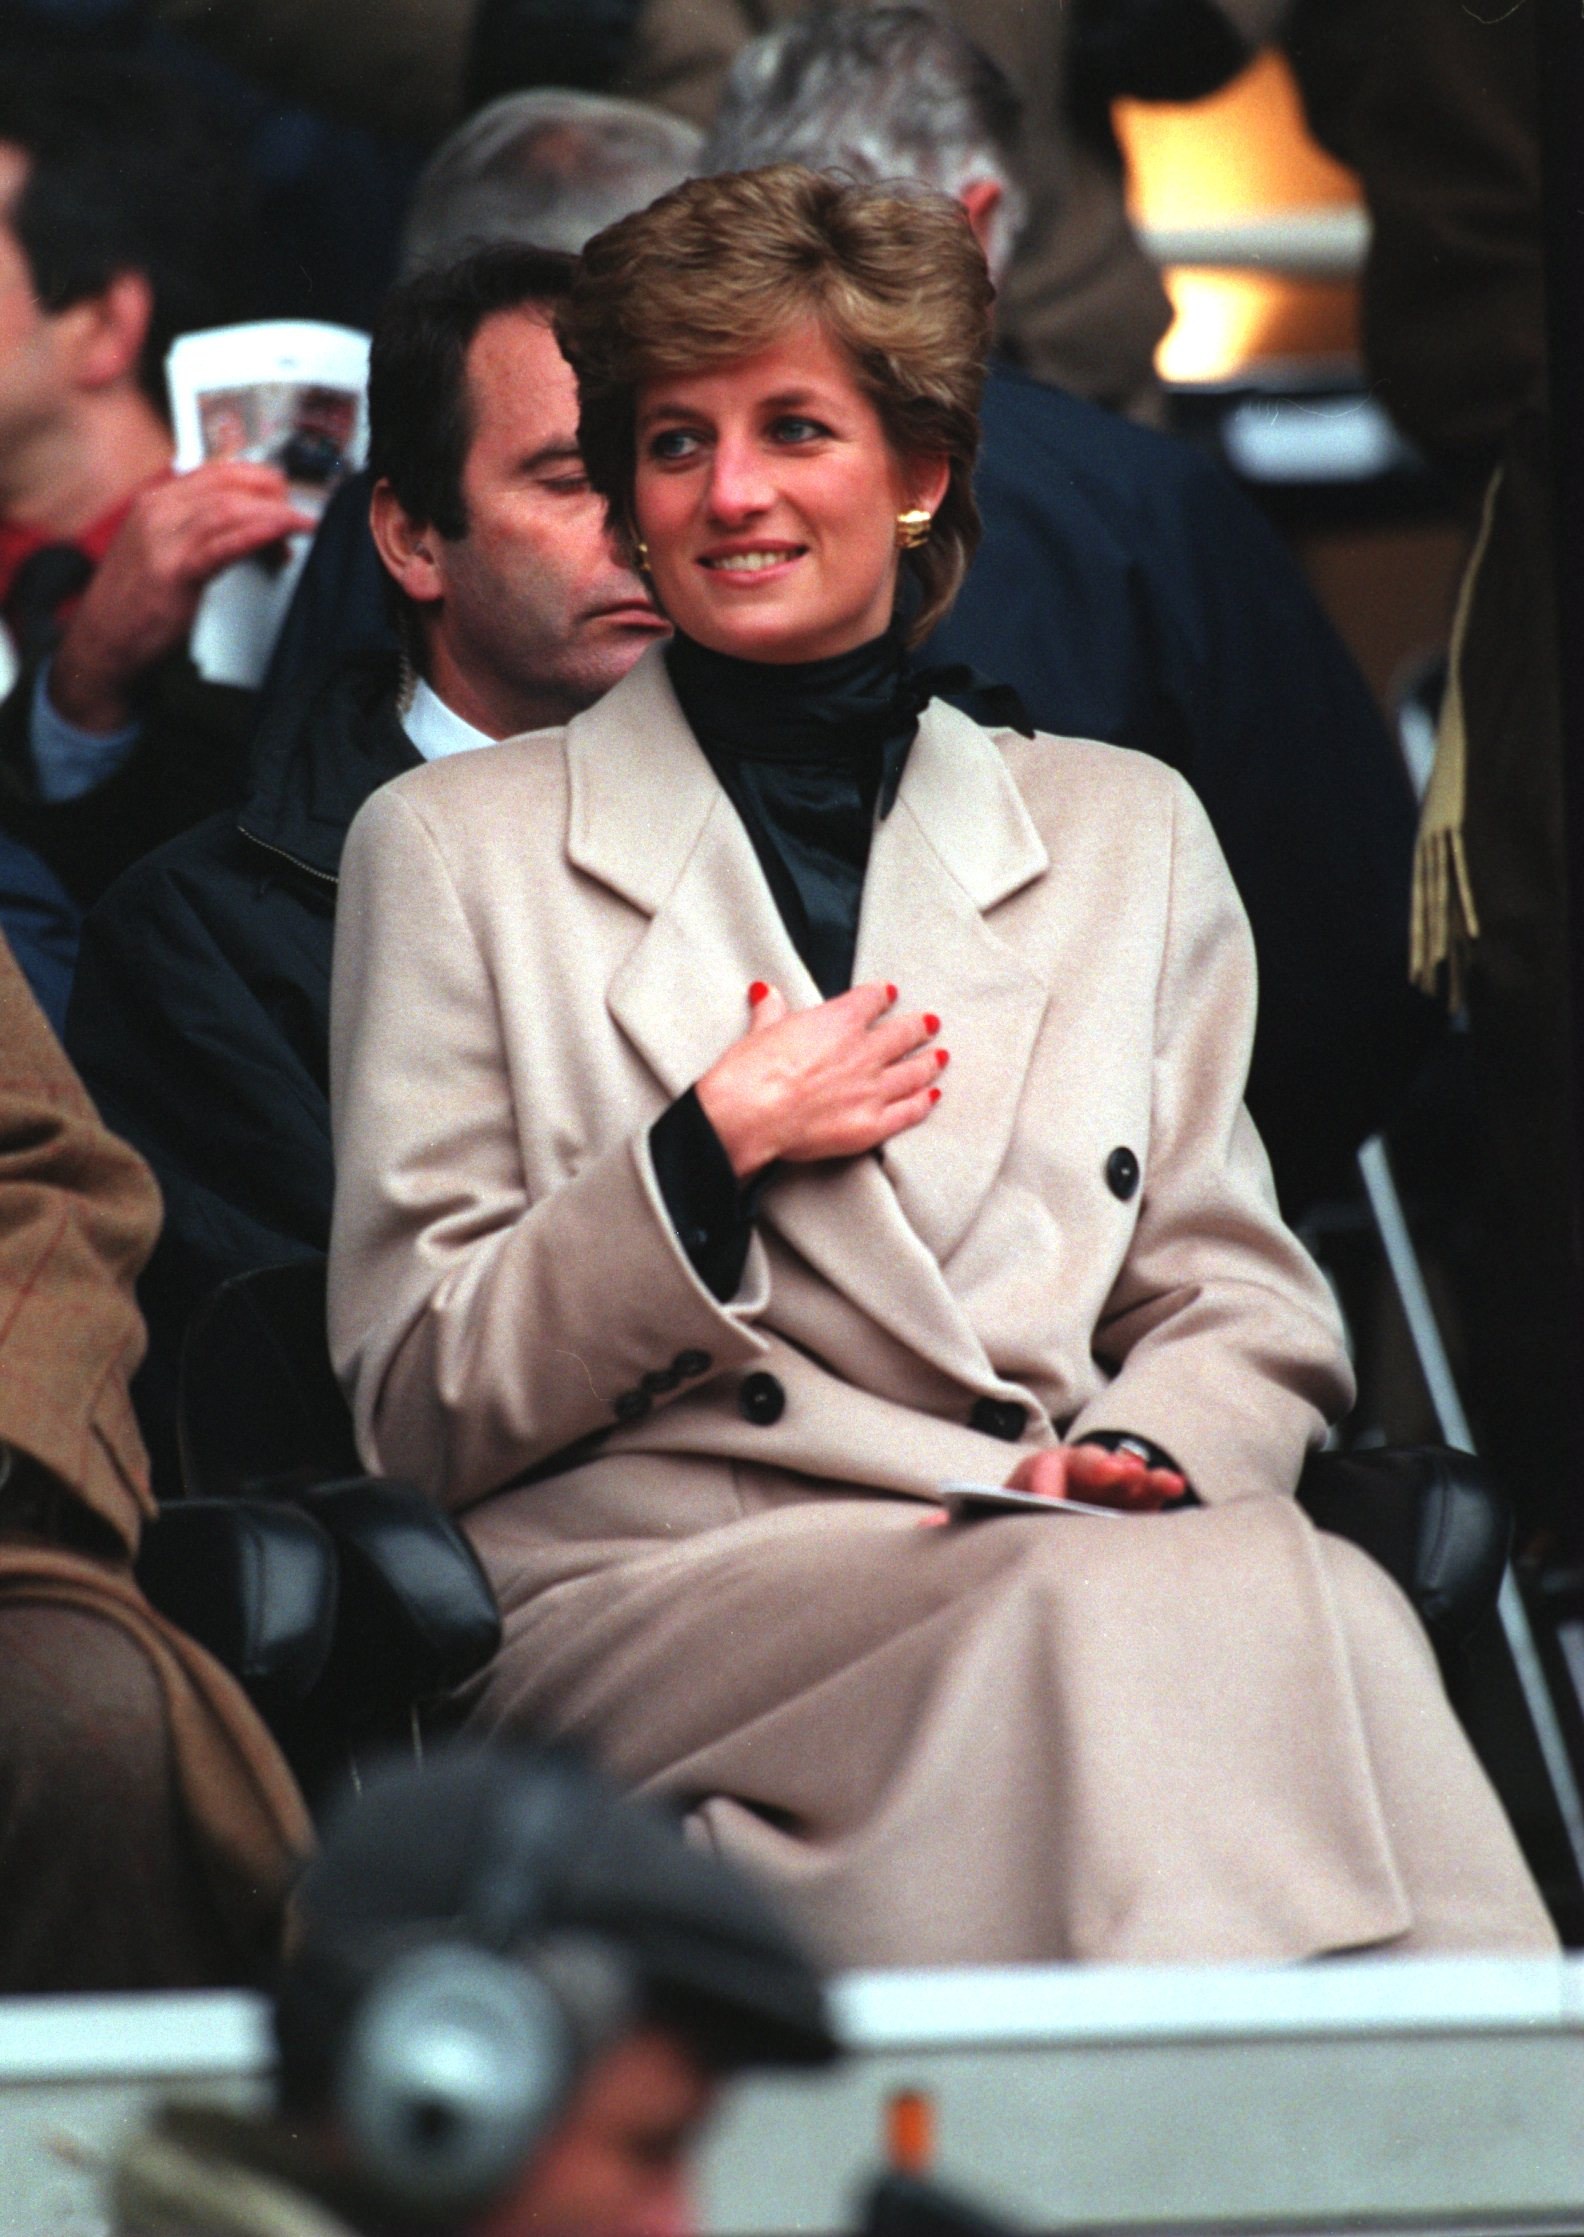 21 JAN 1995: THE PRINCESS OF WALES WATCHES THE WELSH RUGBY UNION TEAM DURING THEIR FIRST FIVE NATIONS MATCH OF THE SEASON AGAINST FRANCE AT PARC DES PRINCES IN PARIS. Mandatory Credit: Pascal Rondeau/ALLSPORT